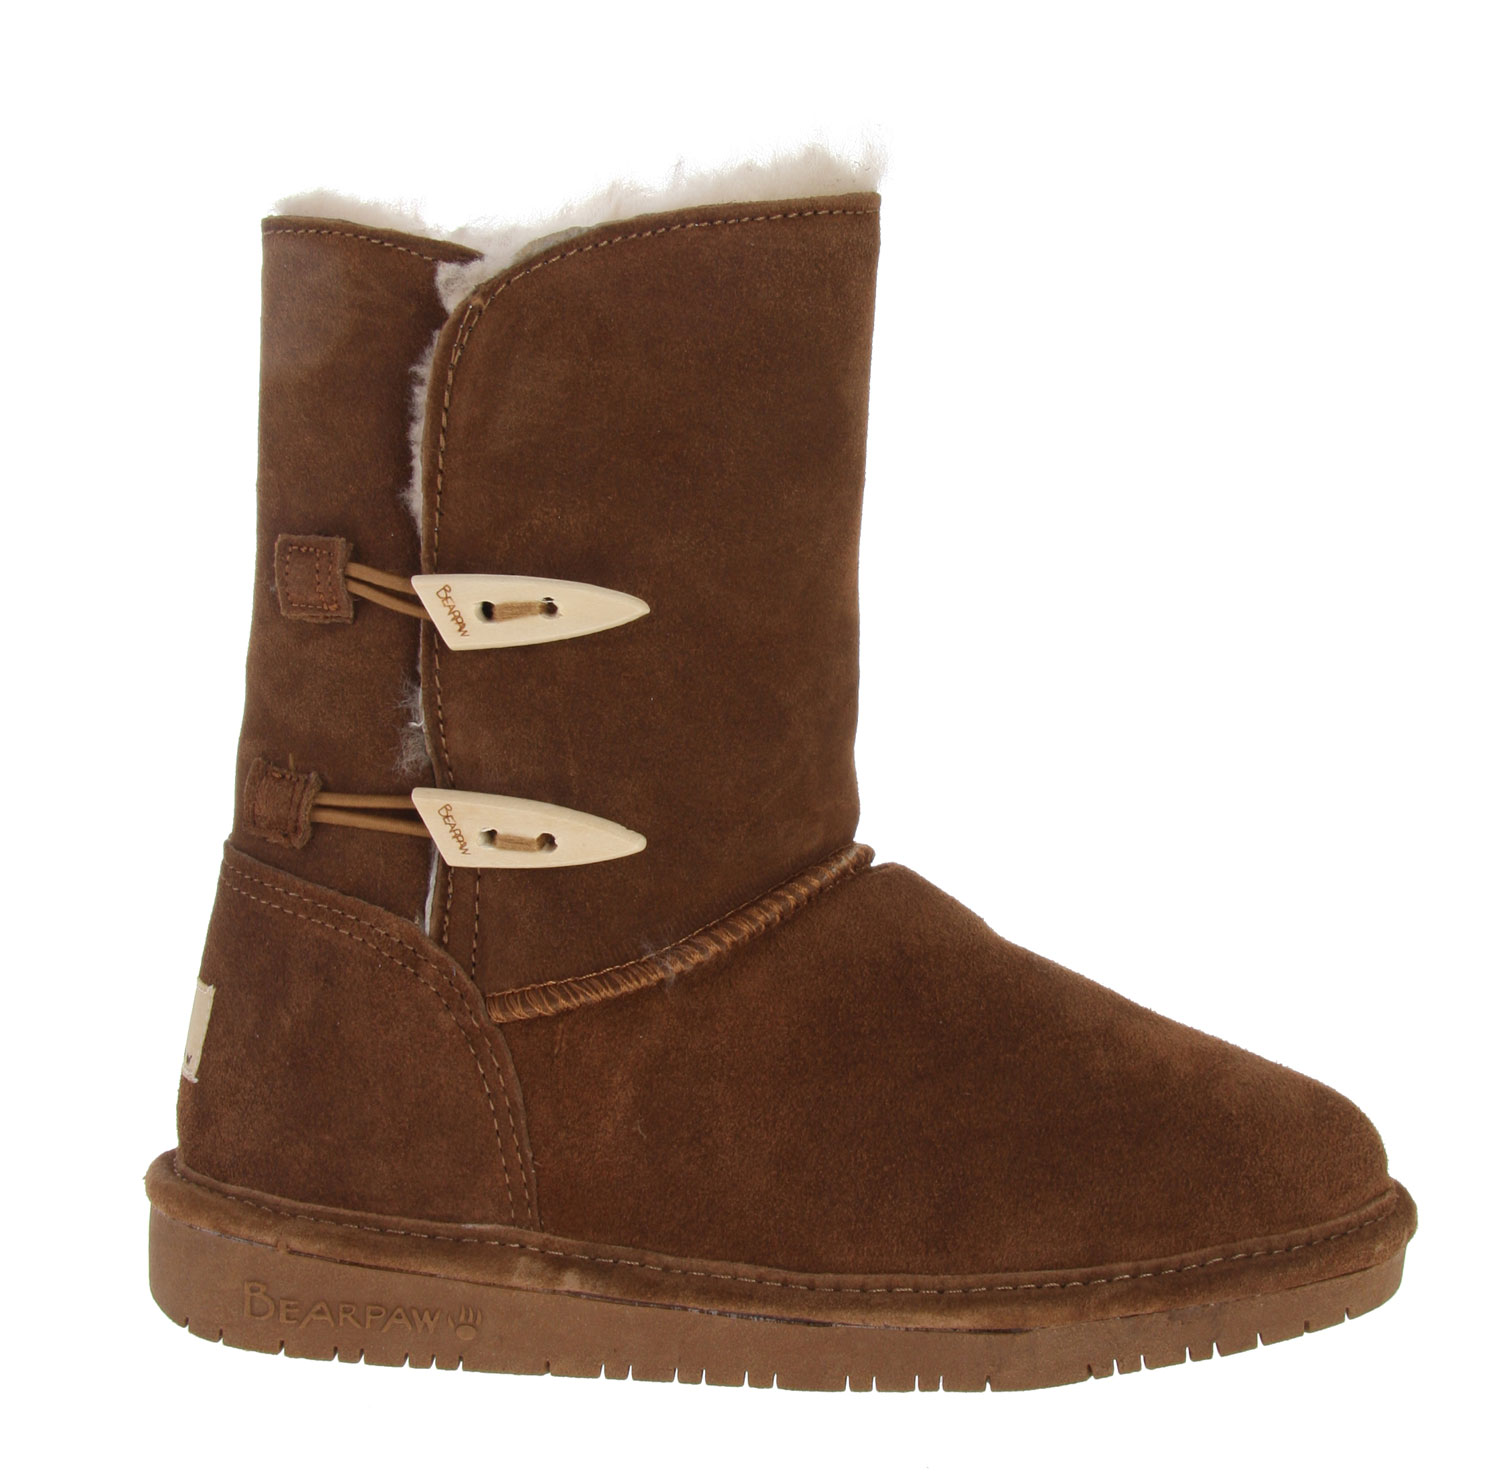 Fitness The Bearpaw Abigail 8 Inch Street Boots are the trendiest looking women''s boots that will never go out of style or lose their inherent sheen of class and taste. With a suede composure and a sleek-looking exterior design, these boots are difficult to overlook. In addition to their appeal, these boots have a luxurious sheepskin footbed and a wool-sheepskin combination of lining in order to ensure the absolute comfort and warmth of the wearer at all times. One touch of the smooth material of these boots will convince any potential buyer to become an actual one.Key Features of The Bearpaw Abigail Boots: Suede Sheepskin/Wool lining Sheepskin Footbed TPR Outsole - $74.99